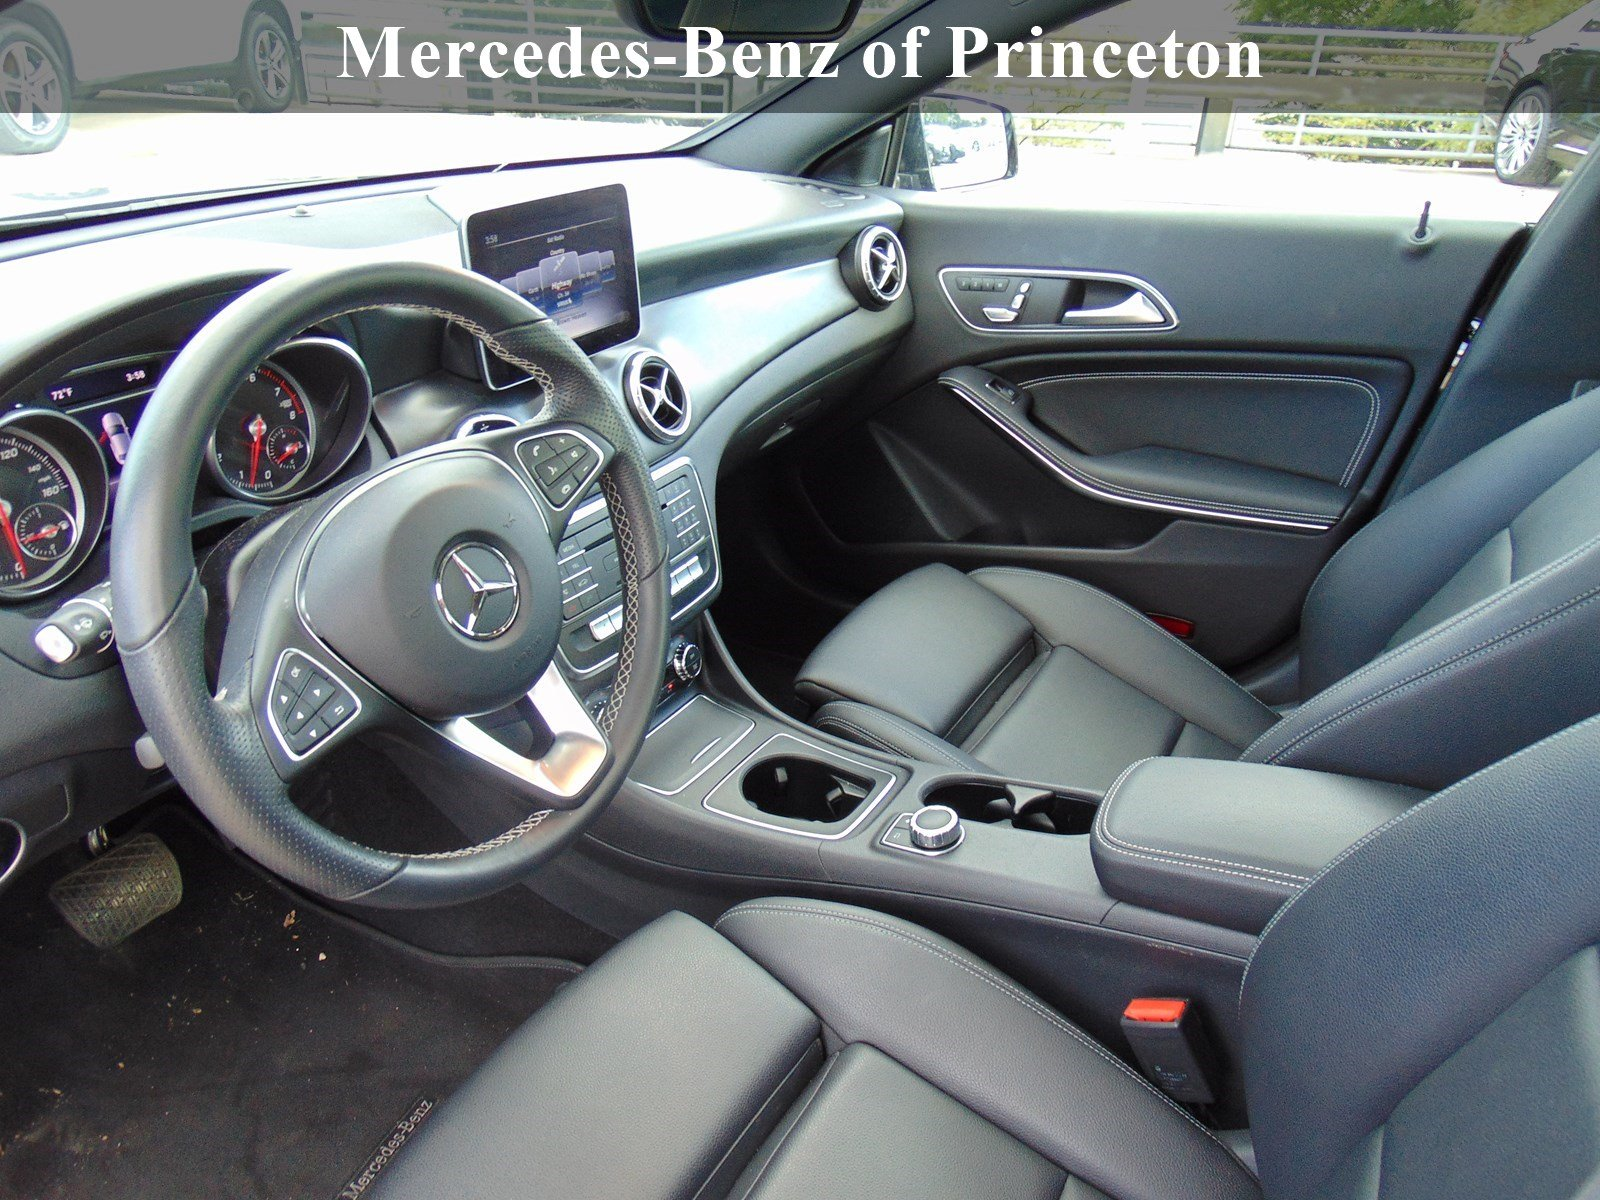 Pre Owned 2018 Mercedes Benz CLA CLA 250 Coupe in Lawrence Township